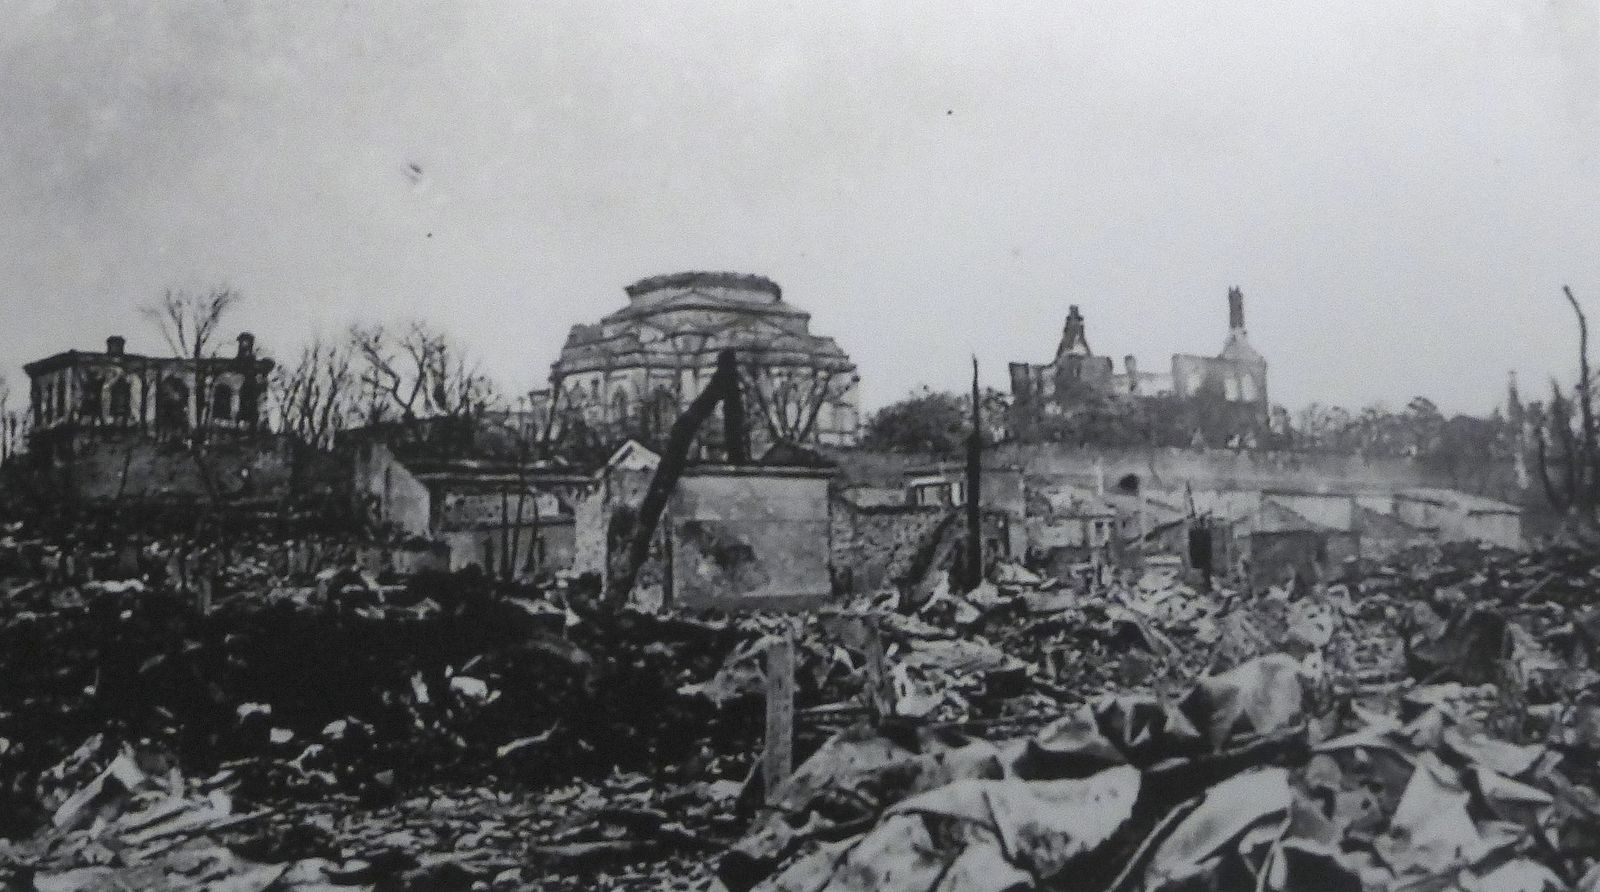 Tokyo_Resurrection_Cathedral_-_after_1923_earthquake.jpg